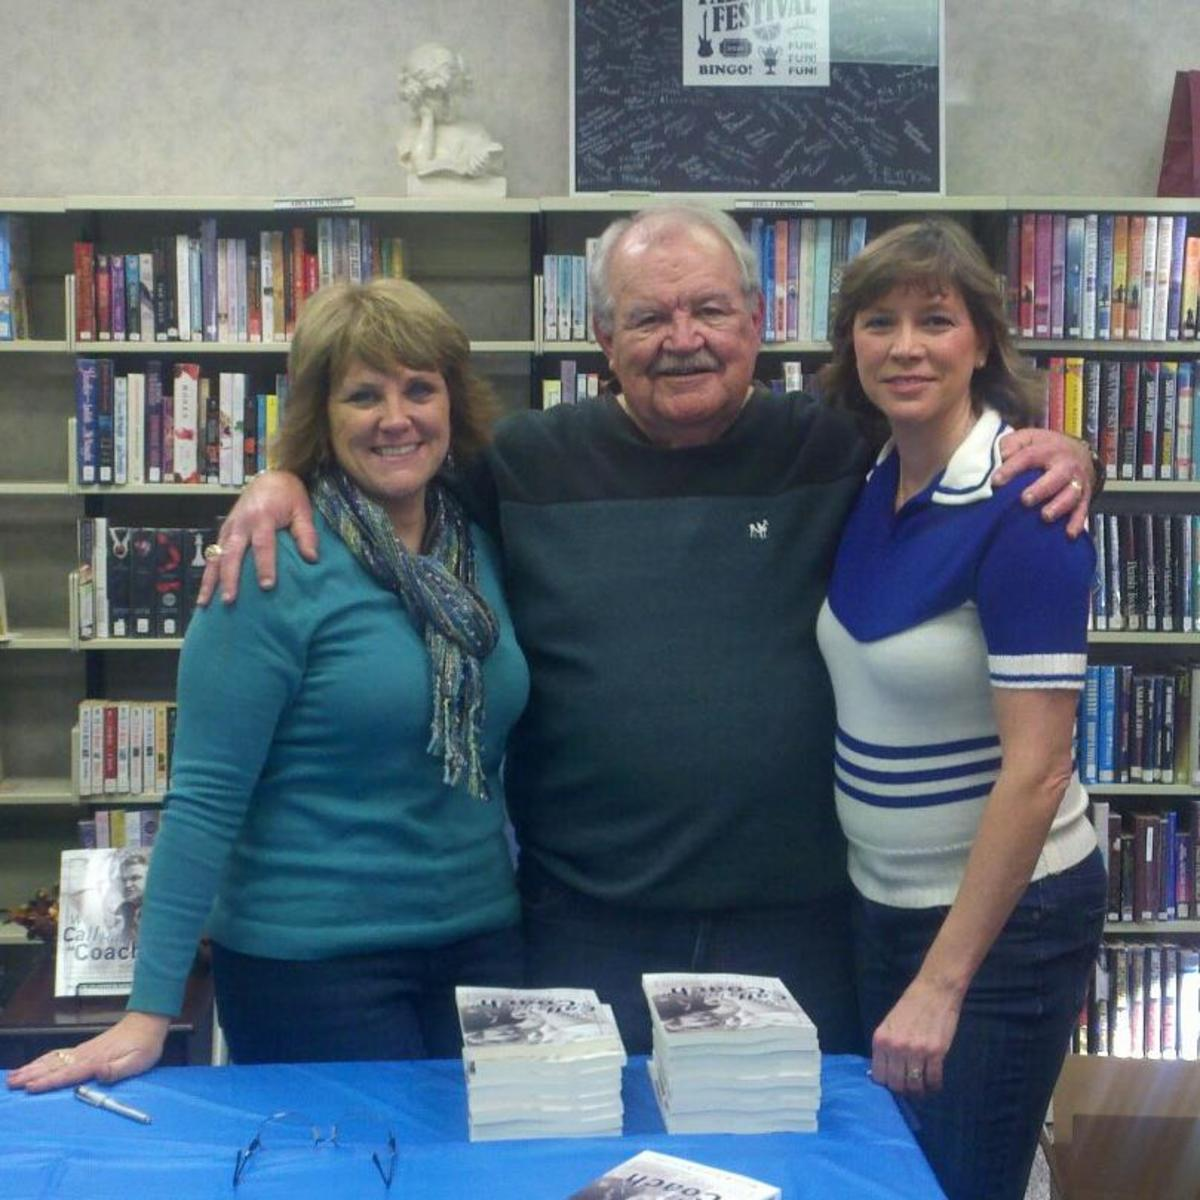 My dad and I at a book signing in 2012. My friend Annette showed up in her cheerleading sweater to surprise my dad.